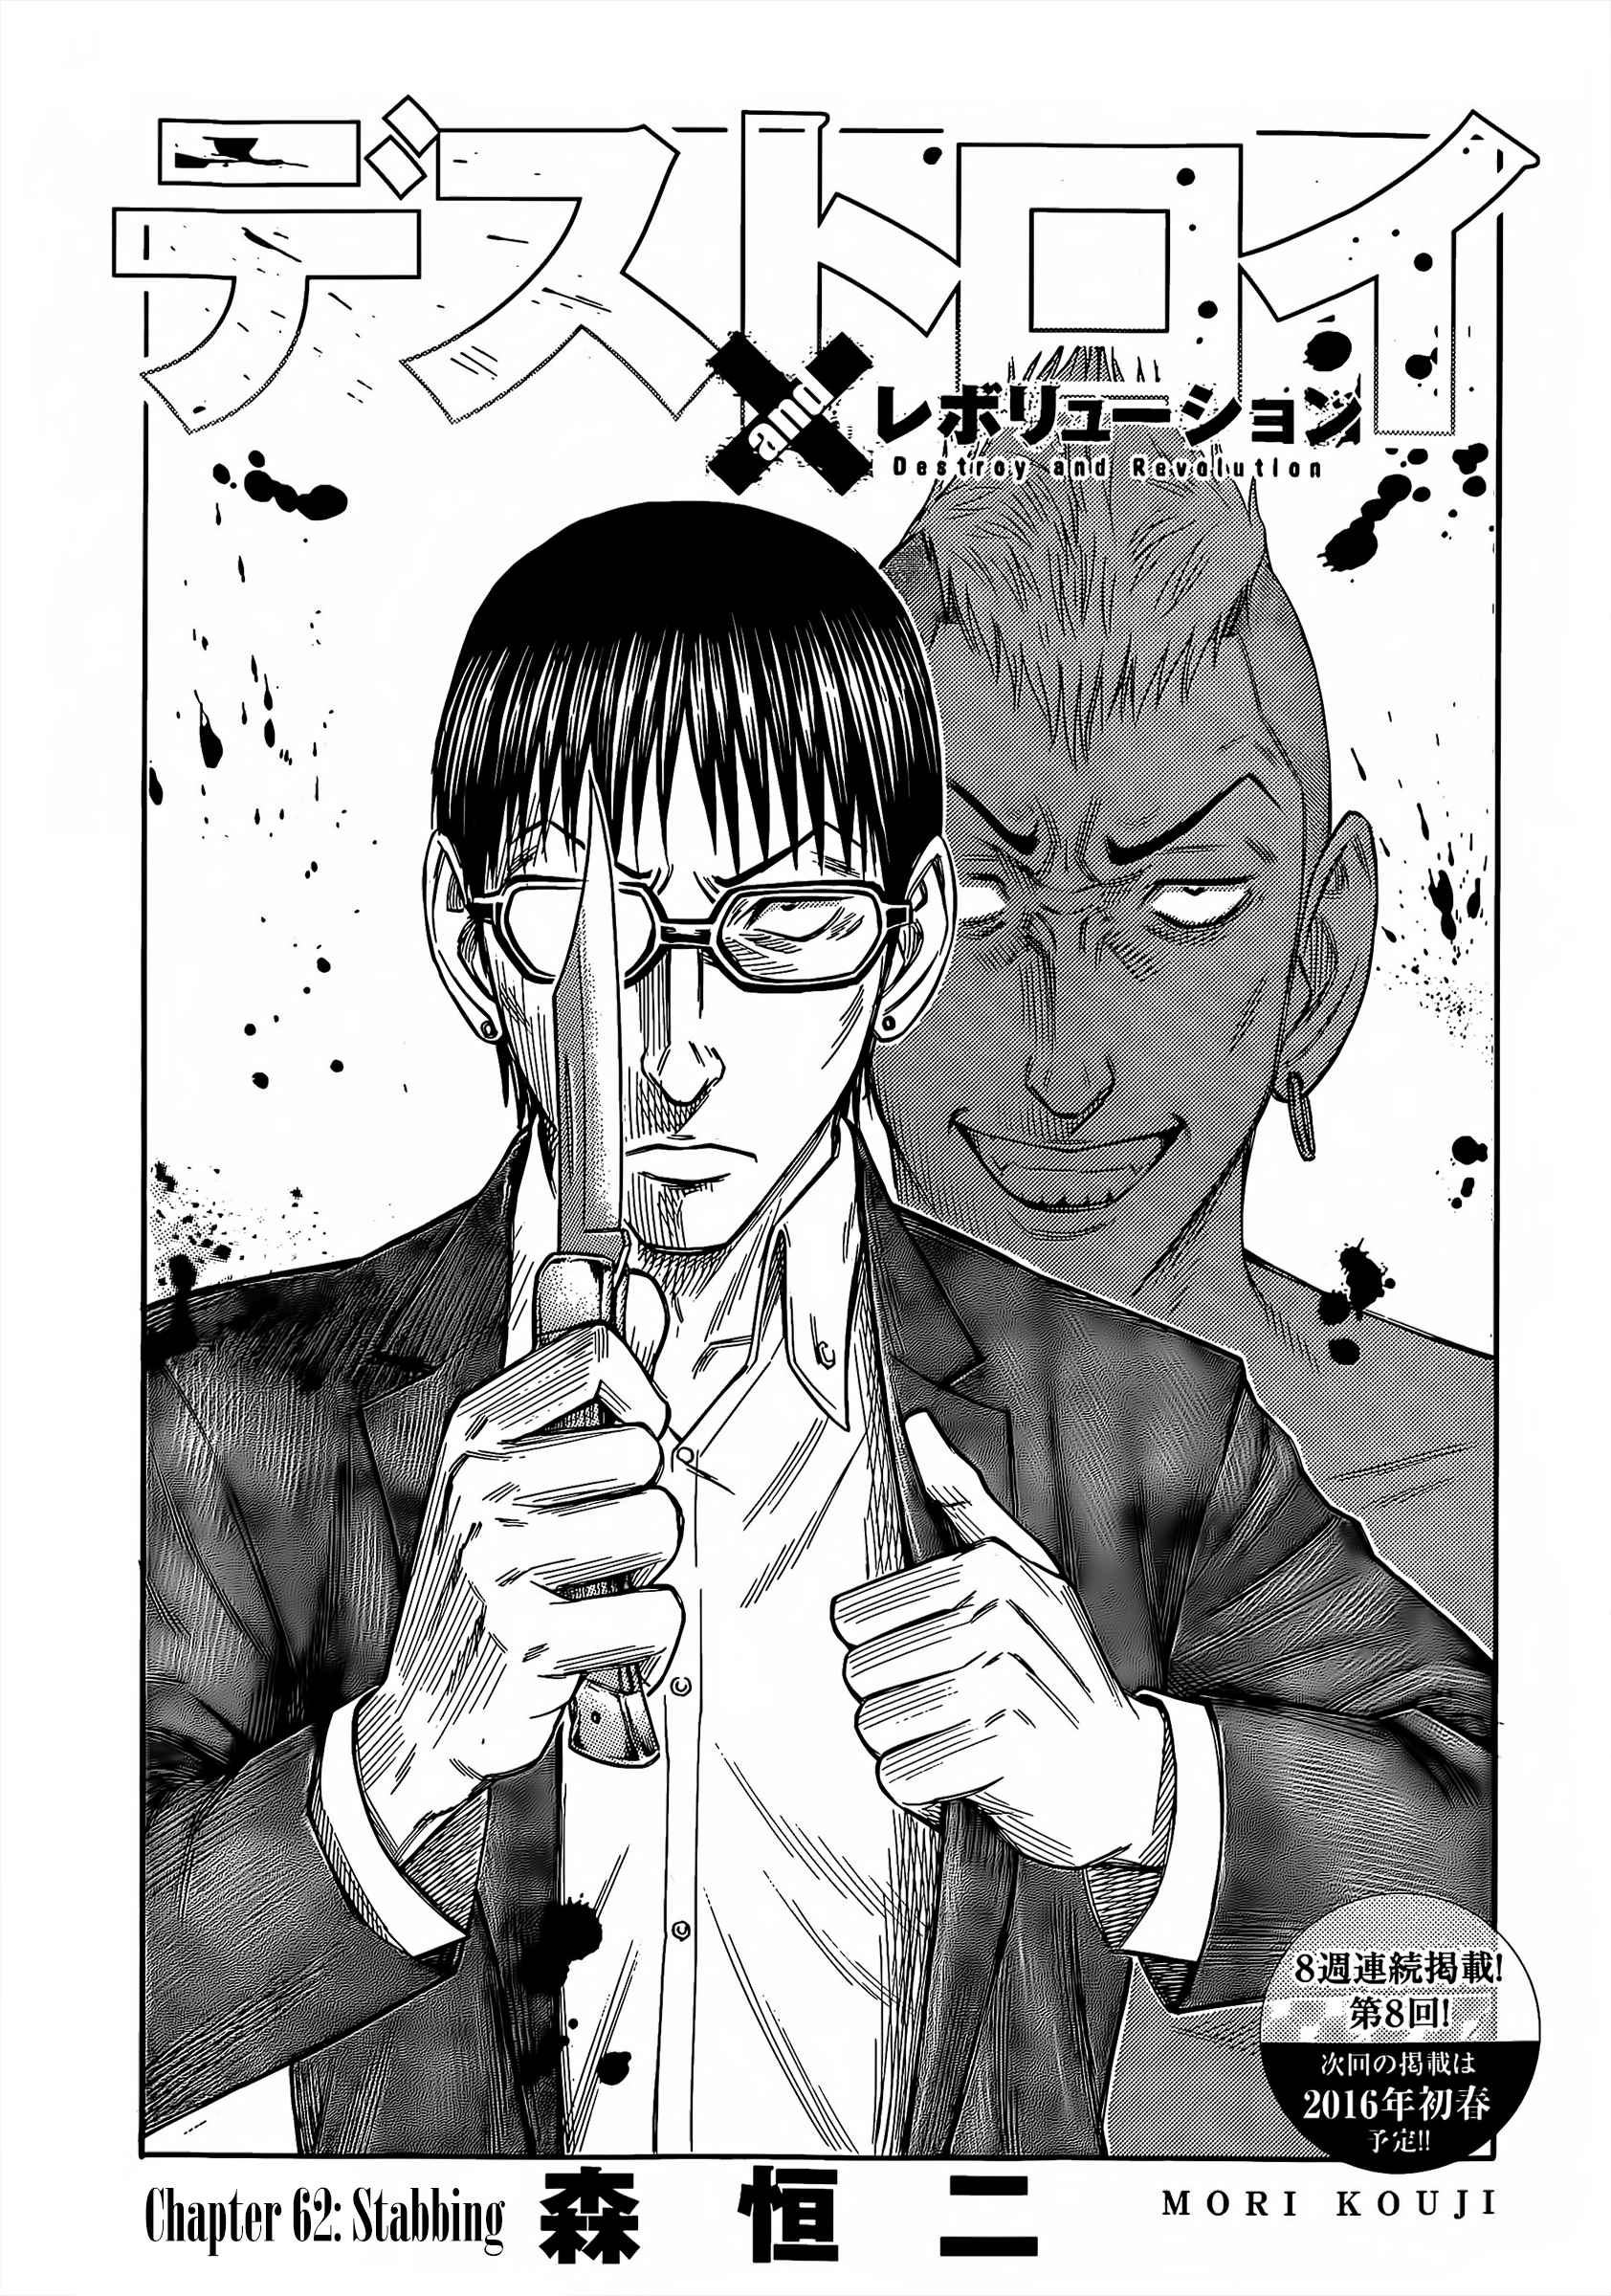 Destroy and Revolution - Chapter 63